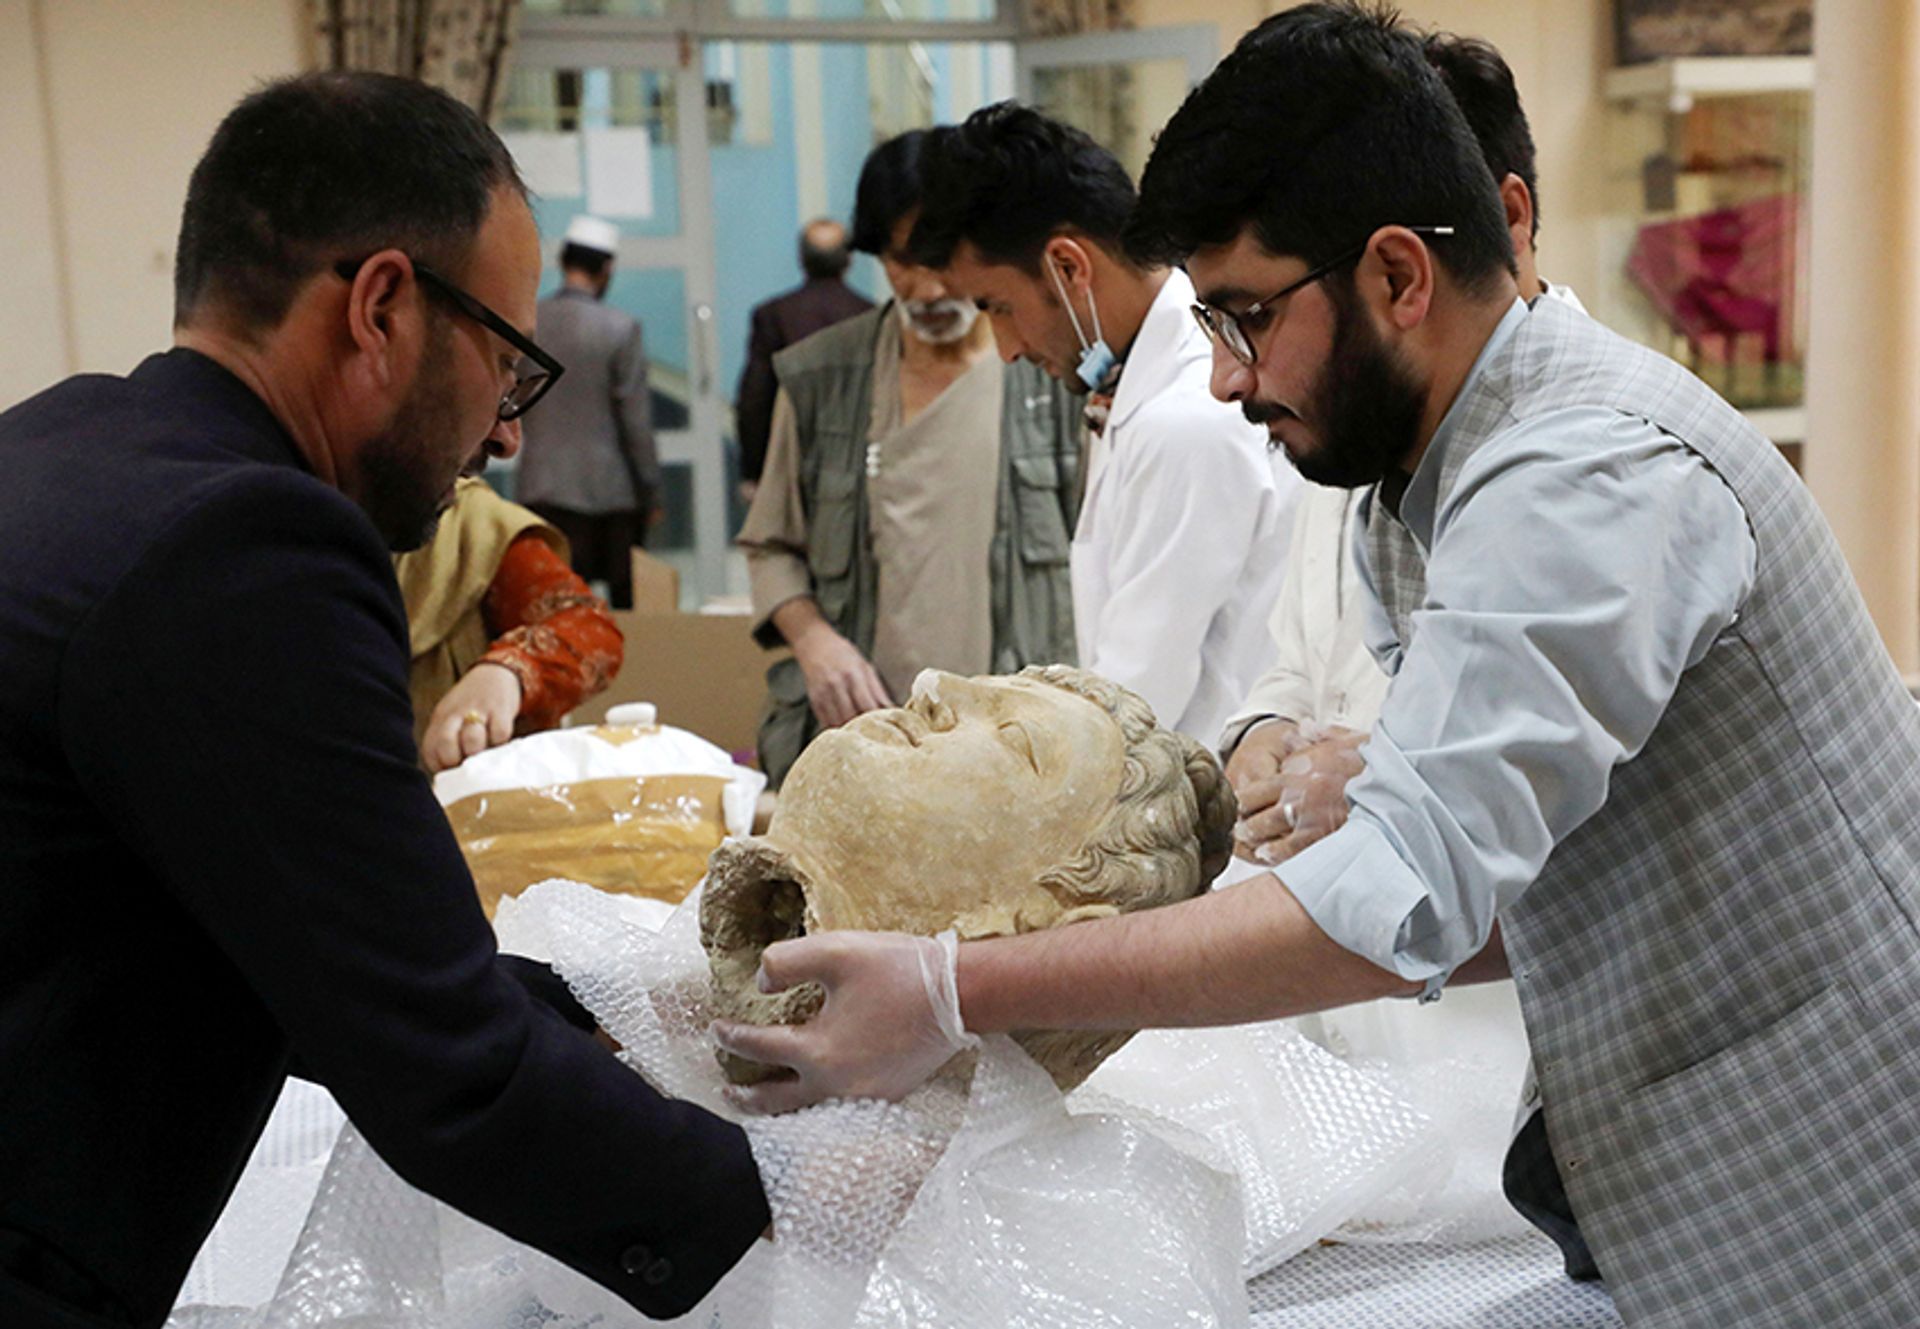 Museum workers unpack an artefact that was smuggled to the US during the wars and was only just returned to the Afghan National Museum in Kabul, Afghanistan, on 29 April 2021 © Reuters / Alamy Stock Photo